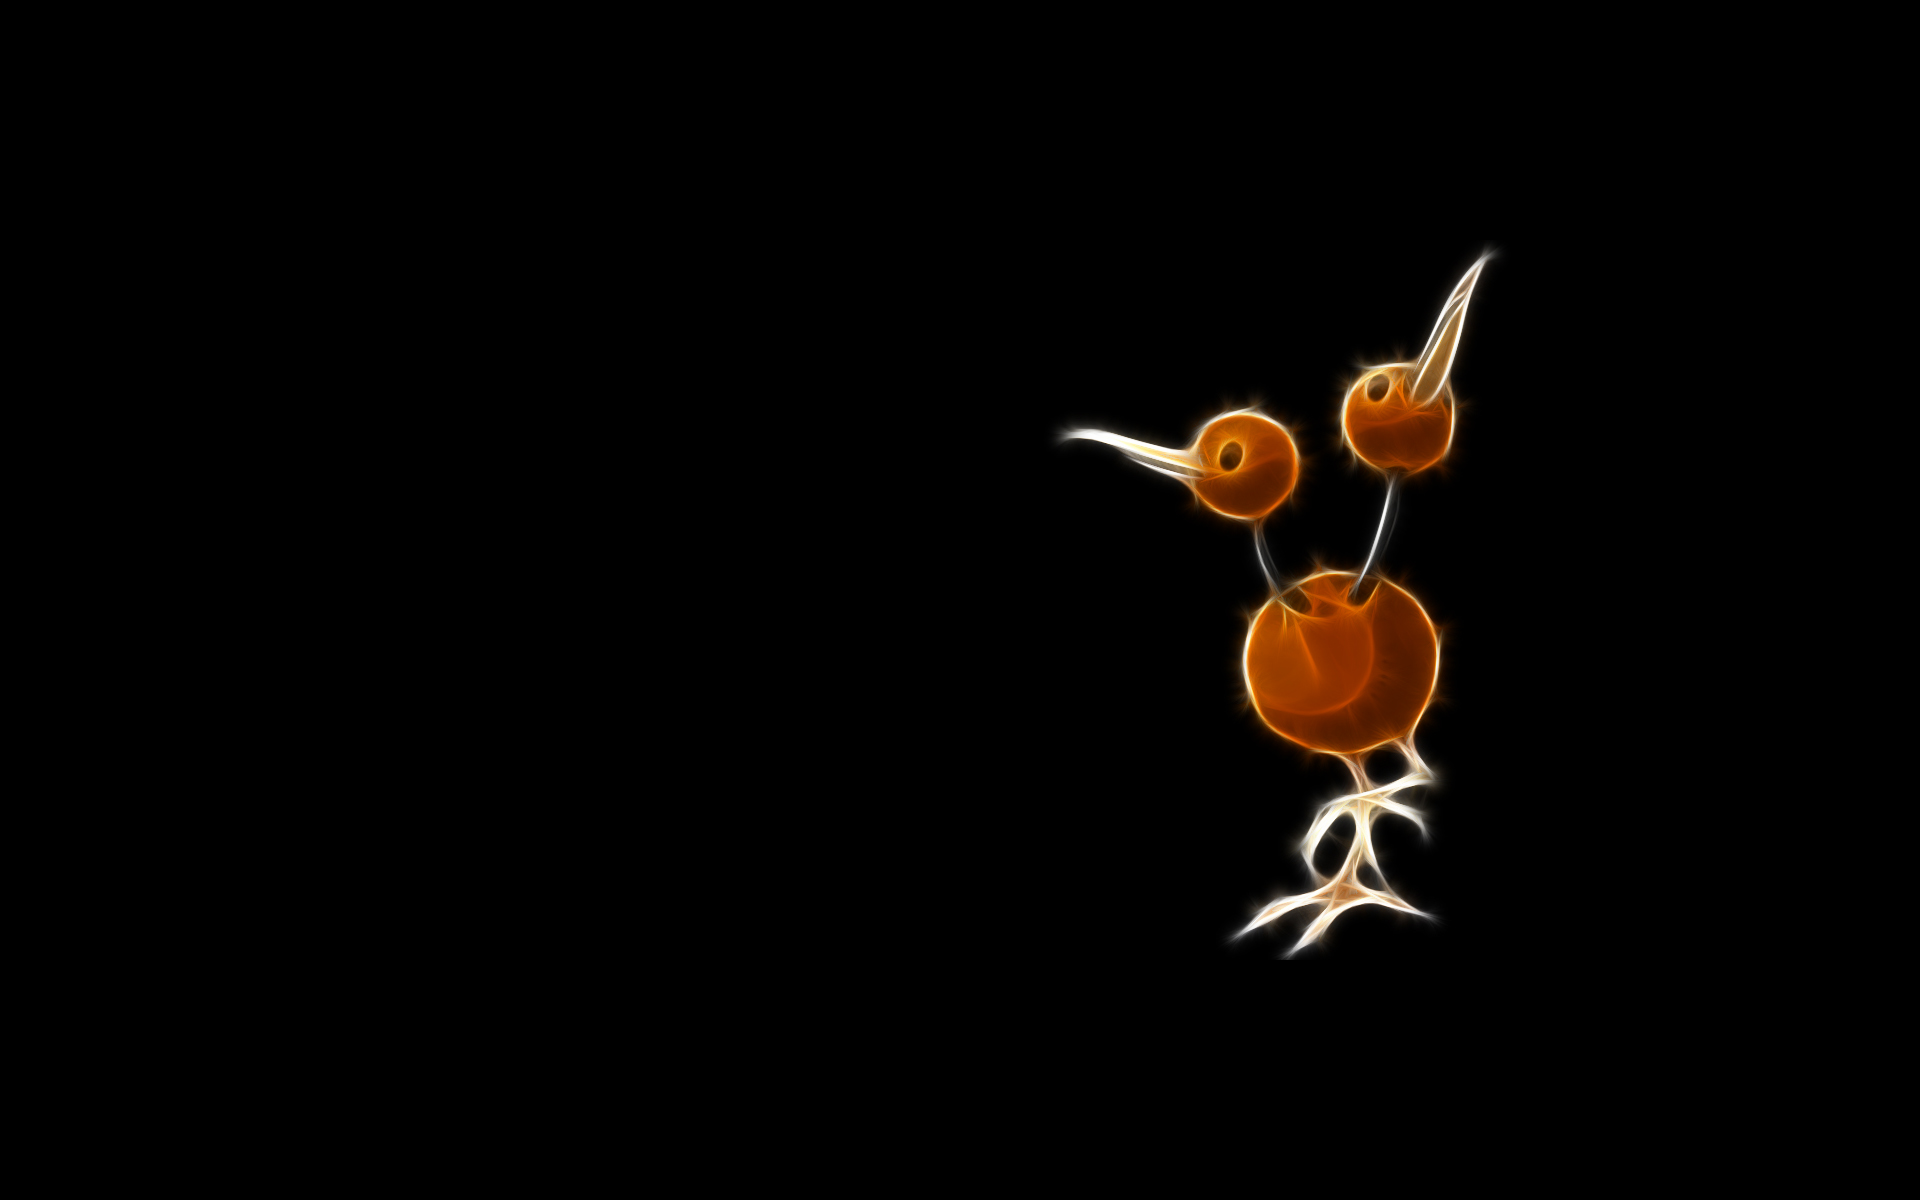 Doduo Wallpapers Doduo Myspace Backgrounds Doduo Backgrounds For 1920x1200